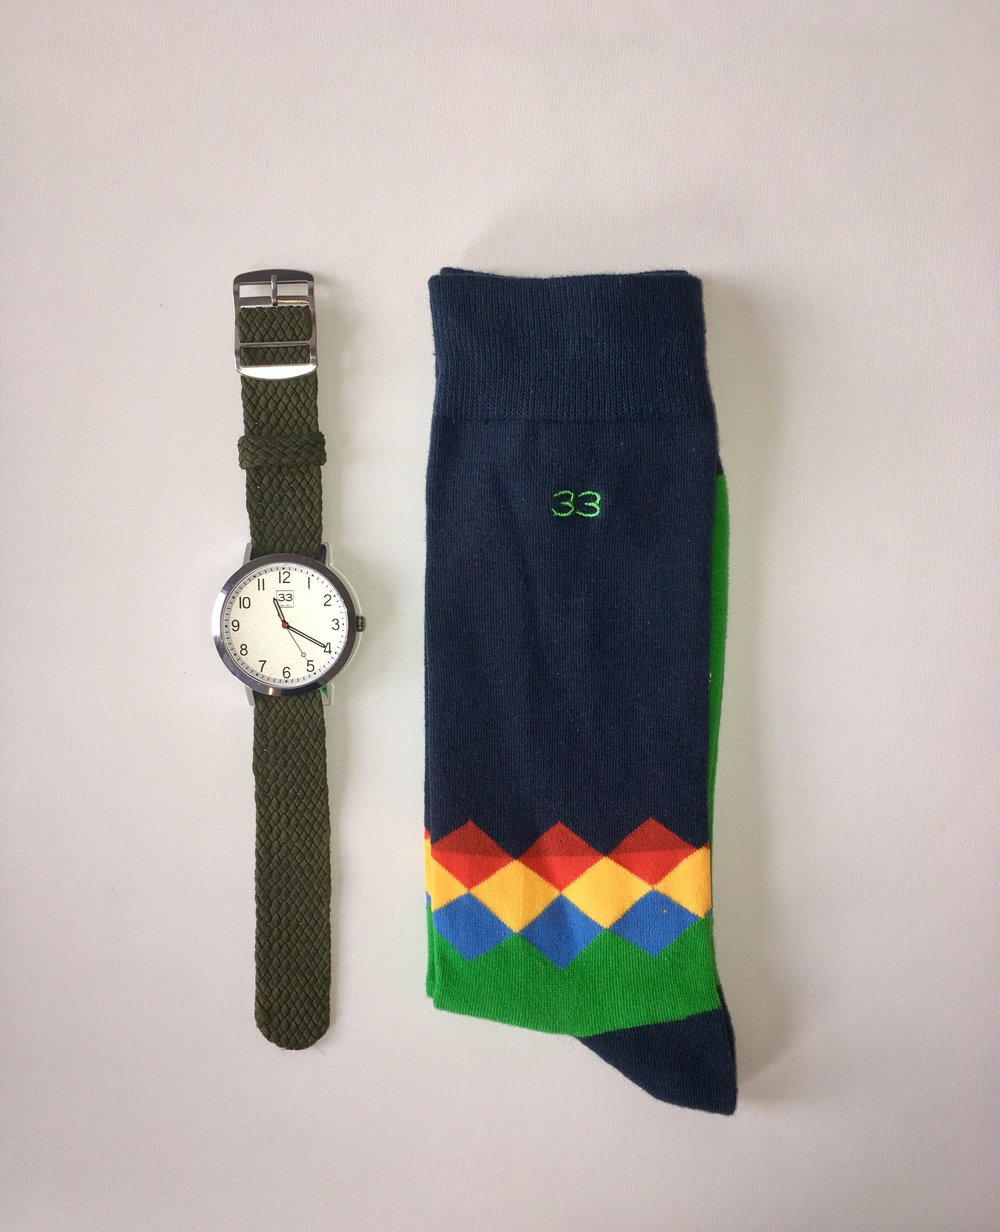 Combination (Time Machine and Limited Edition Socks by 33)